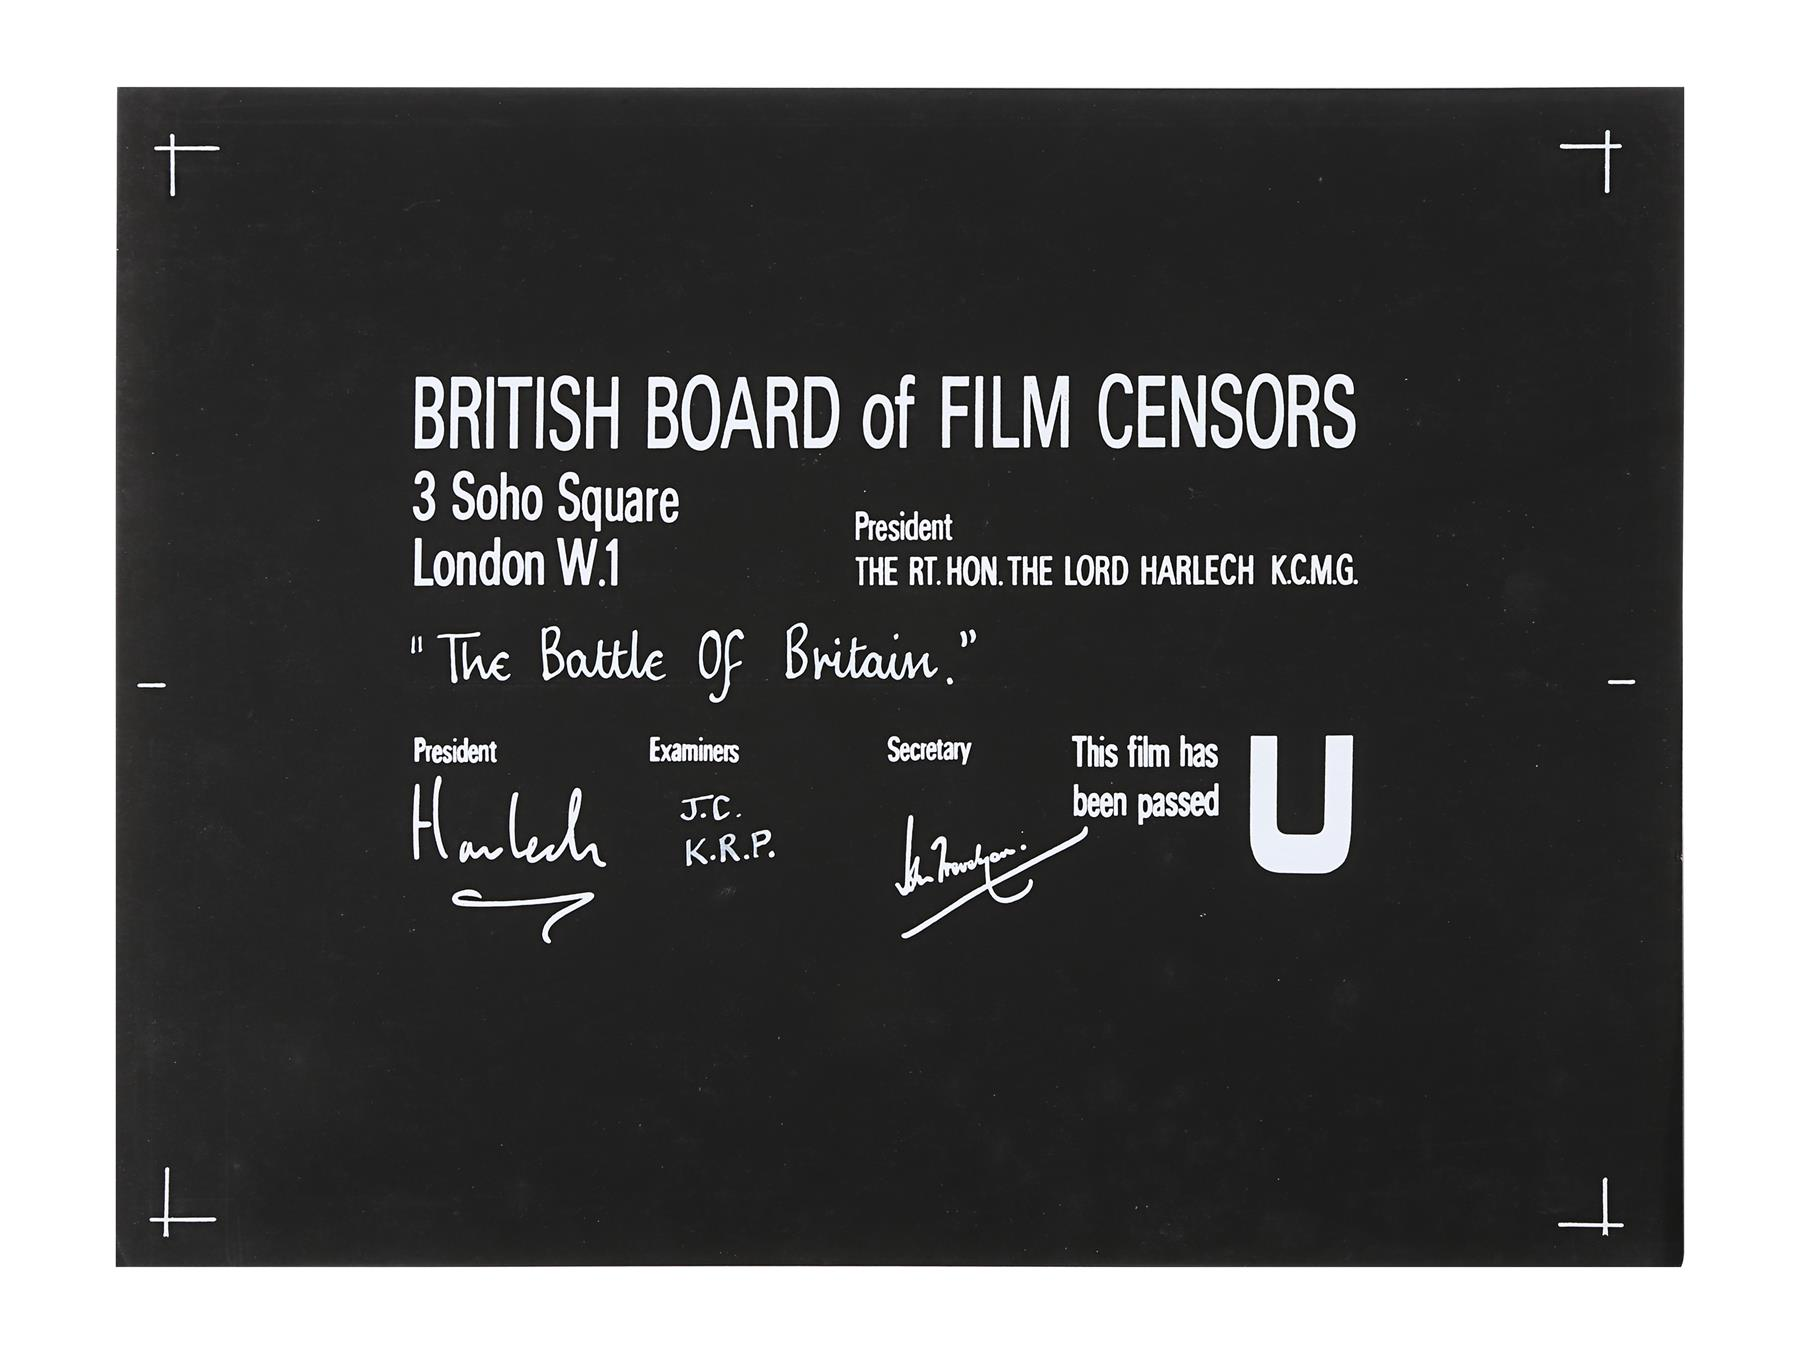 VARIOUS PRODUCTIONS - BBFC Certificates of British Classics - Image 2 of 6